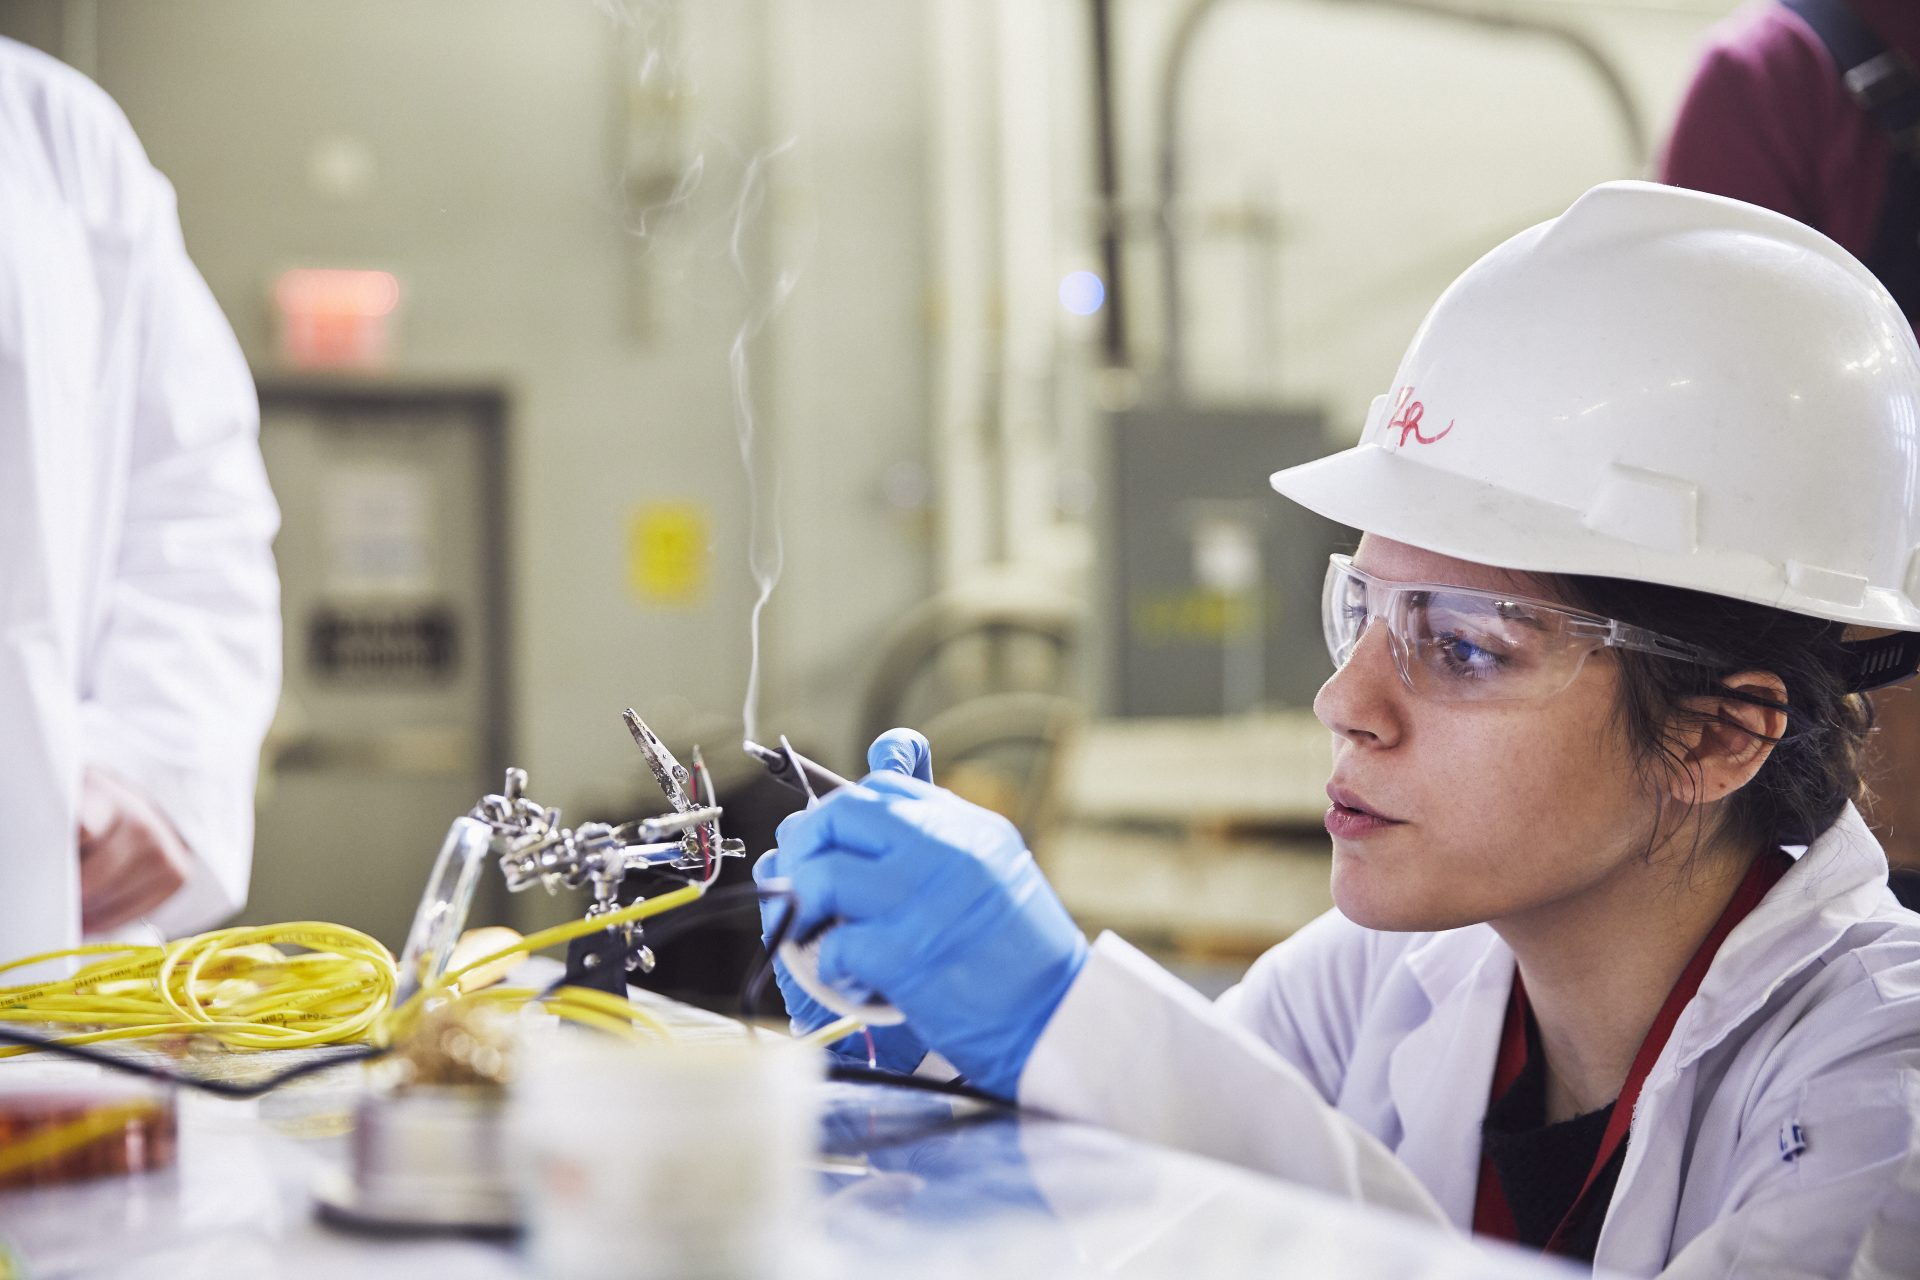 Worker in lab